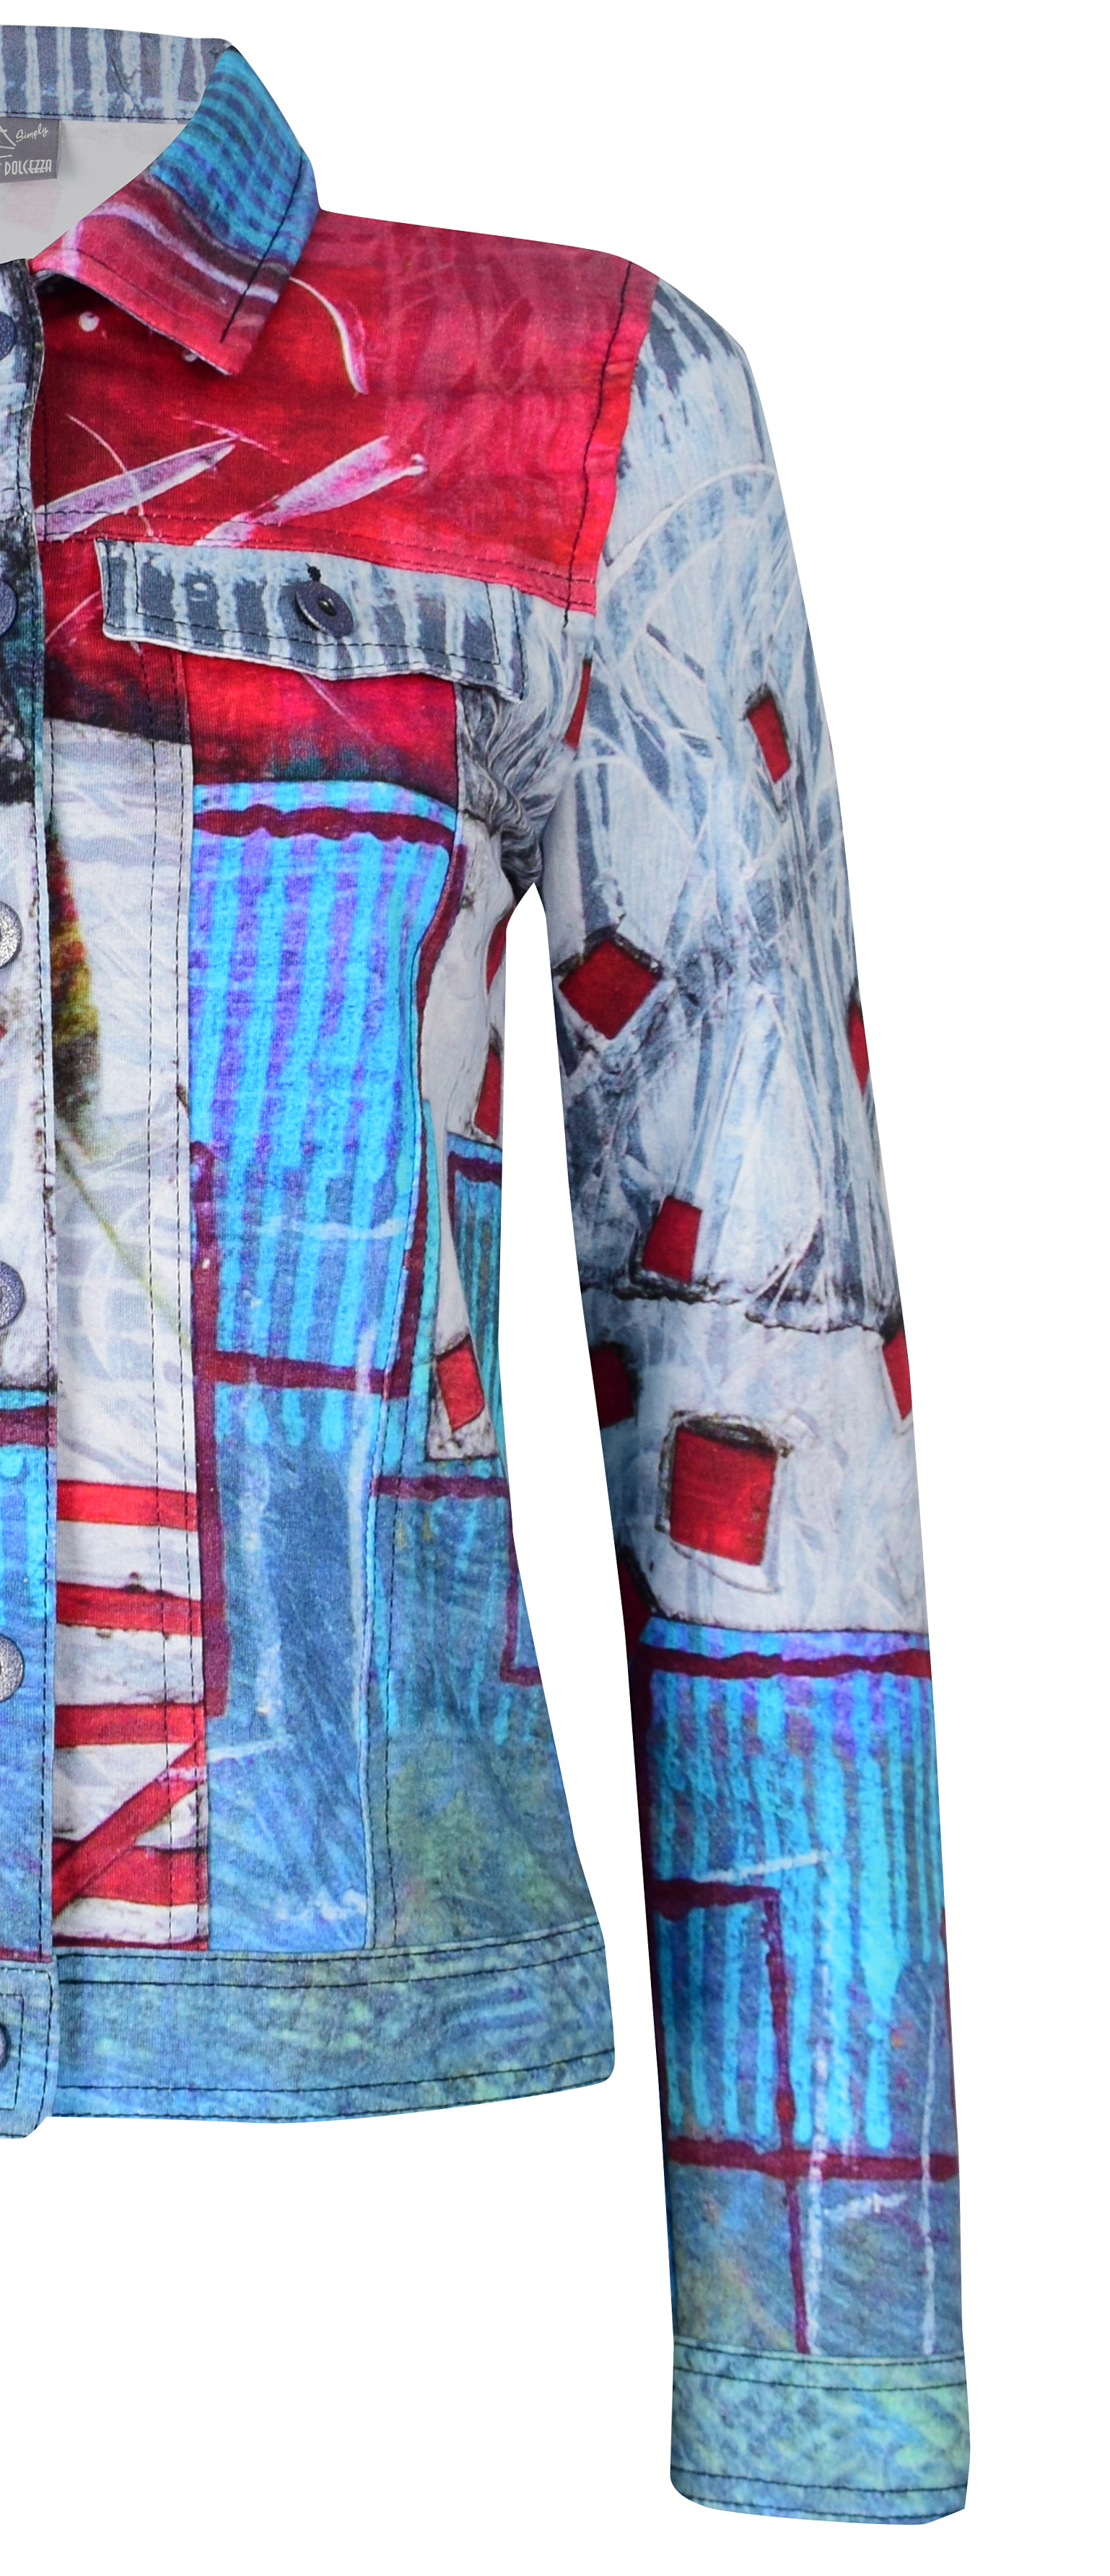 Simply Art Dolcezza: Only Love Spiritually Square Soft Denim Abstract Art Jacket